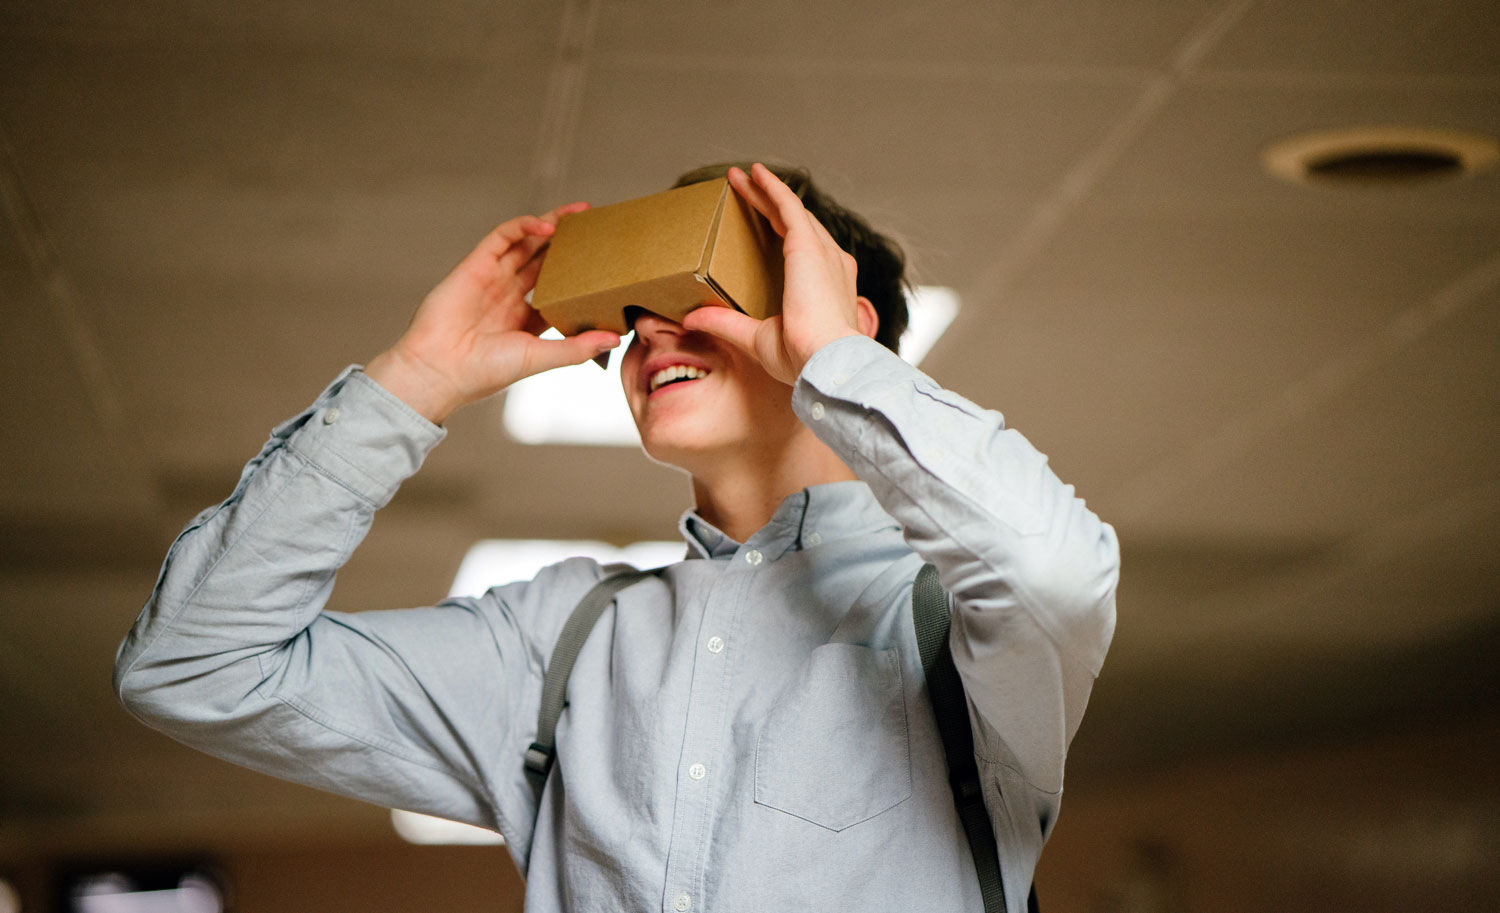 Man in Grey Dress Shirt Using Brown Cardboard Vr Glasses - Photo by mentatdgt from Pexels